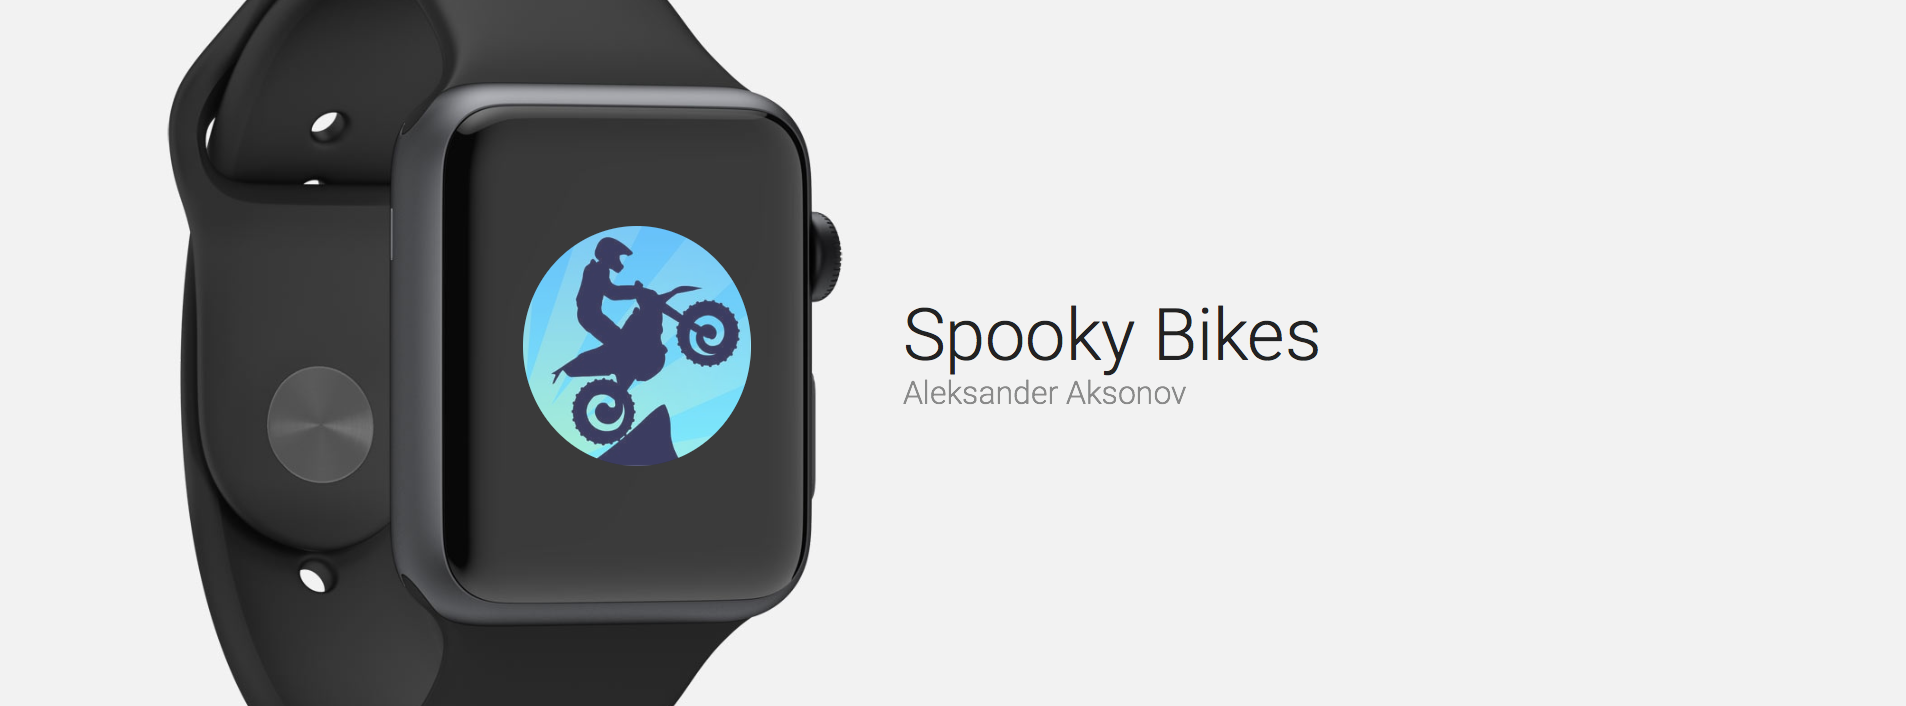 Spooky Bikes is a Frustrating Endless Runner Game